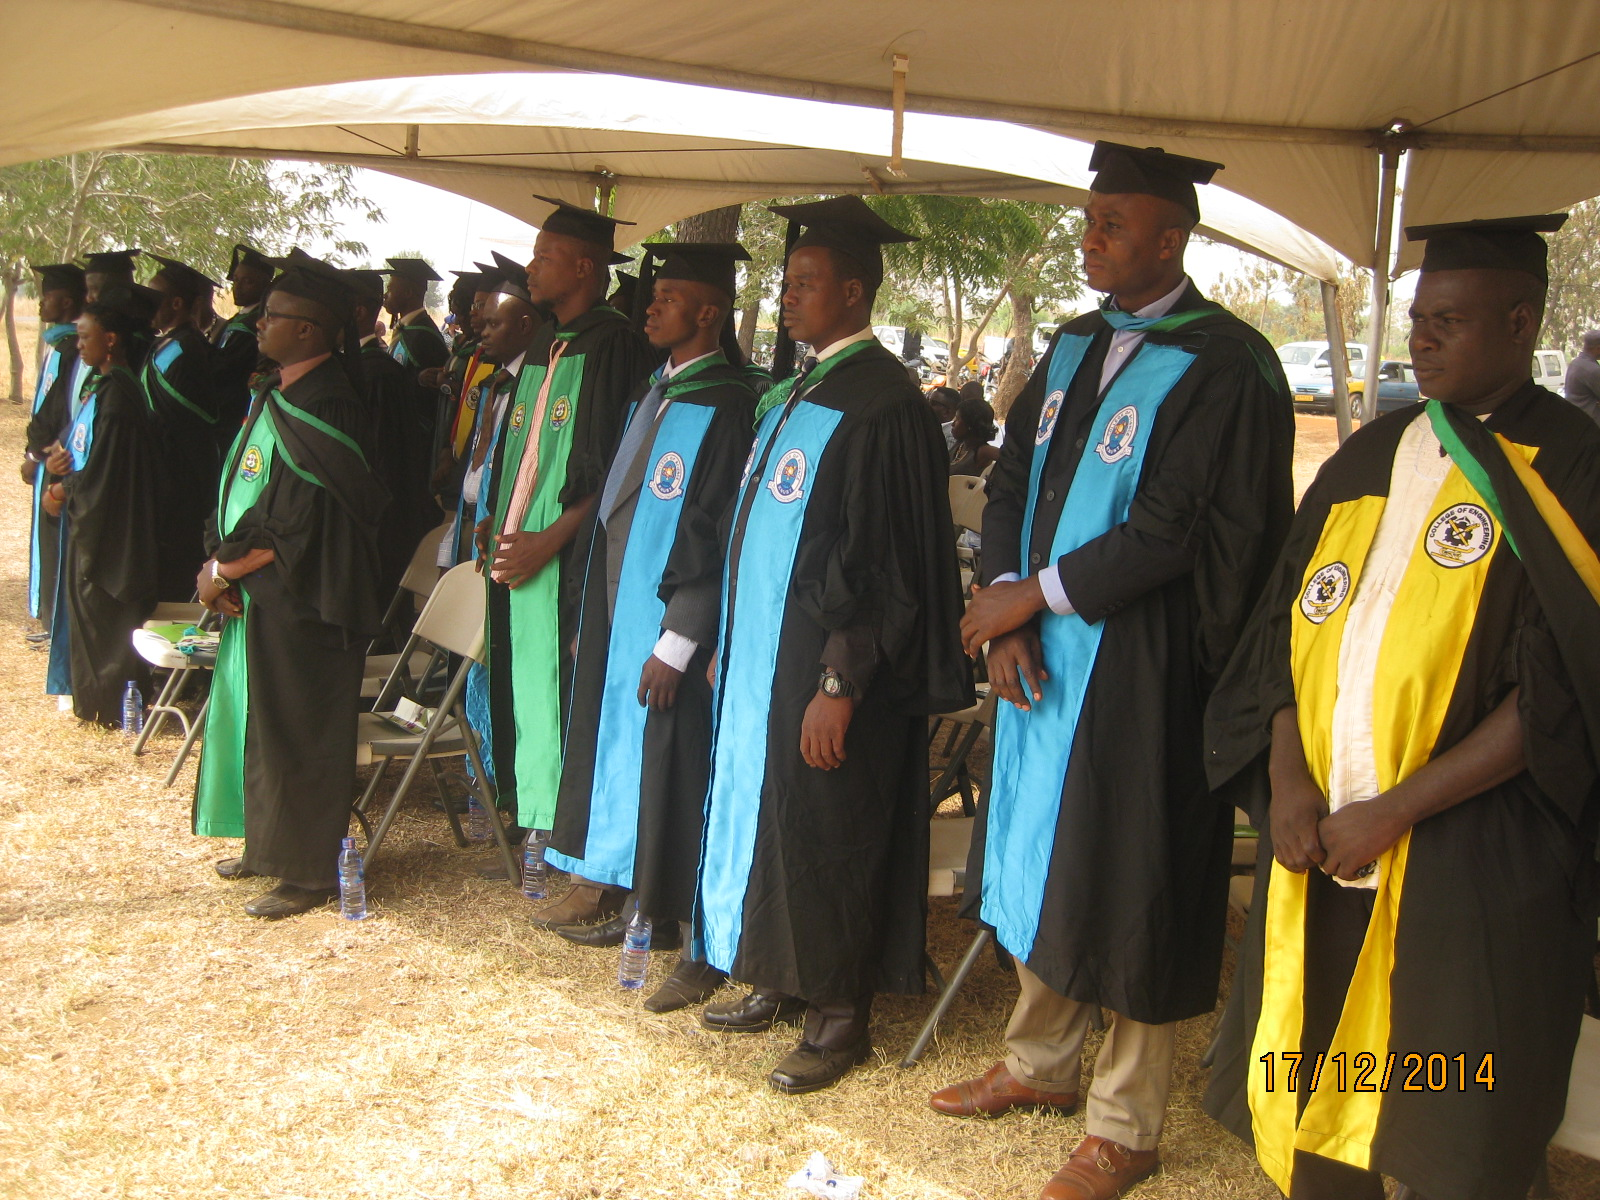 Picture shows some of the graduands